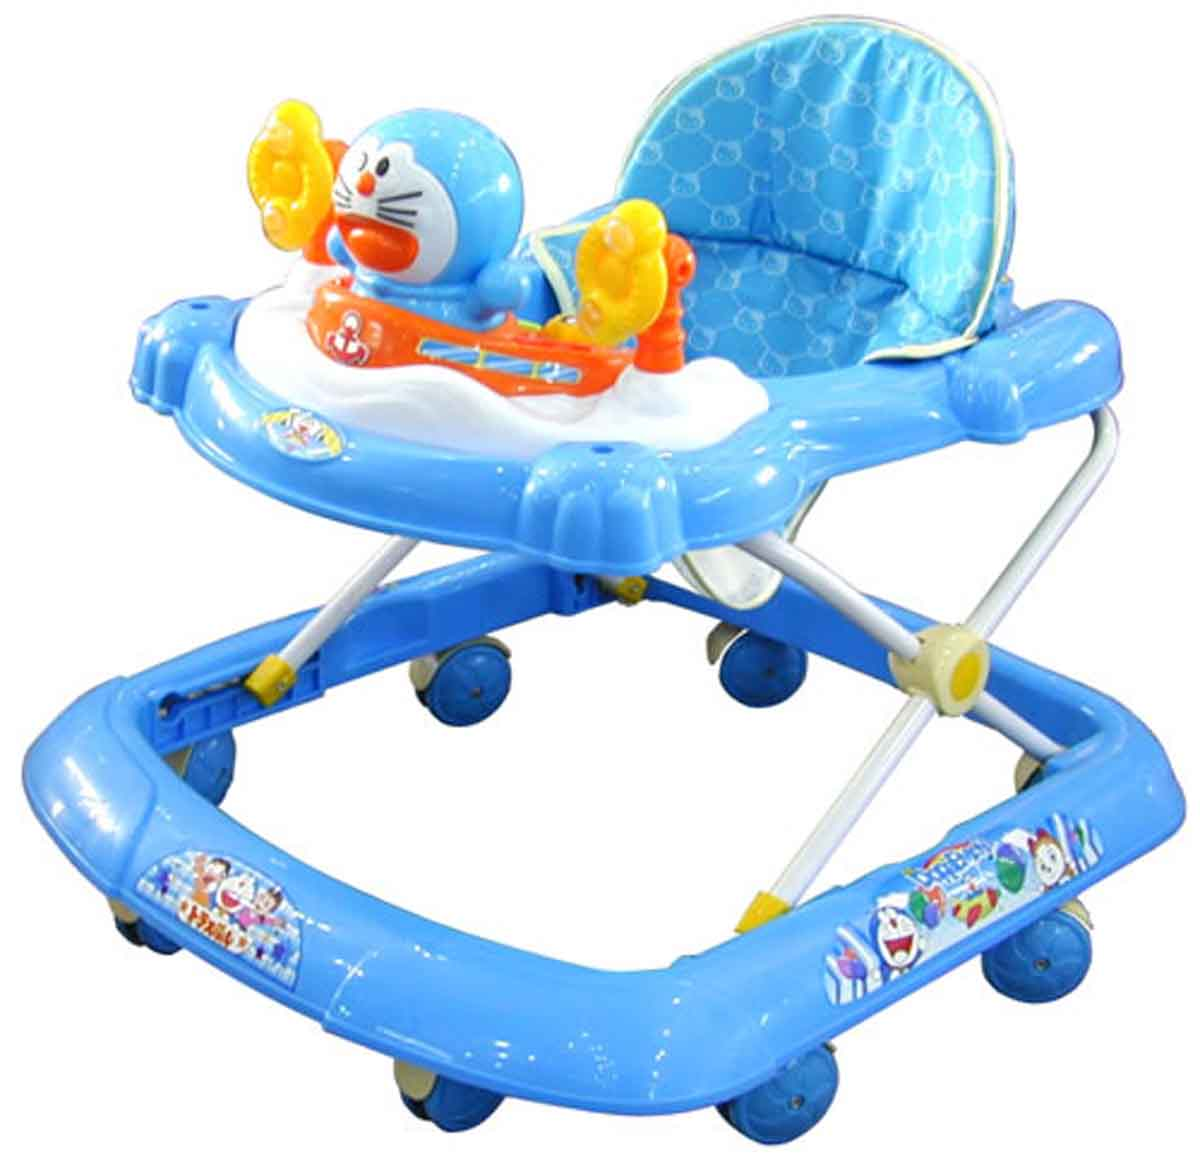 Toy, Baby Walkers The Good and the Bad